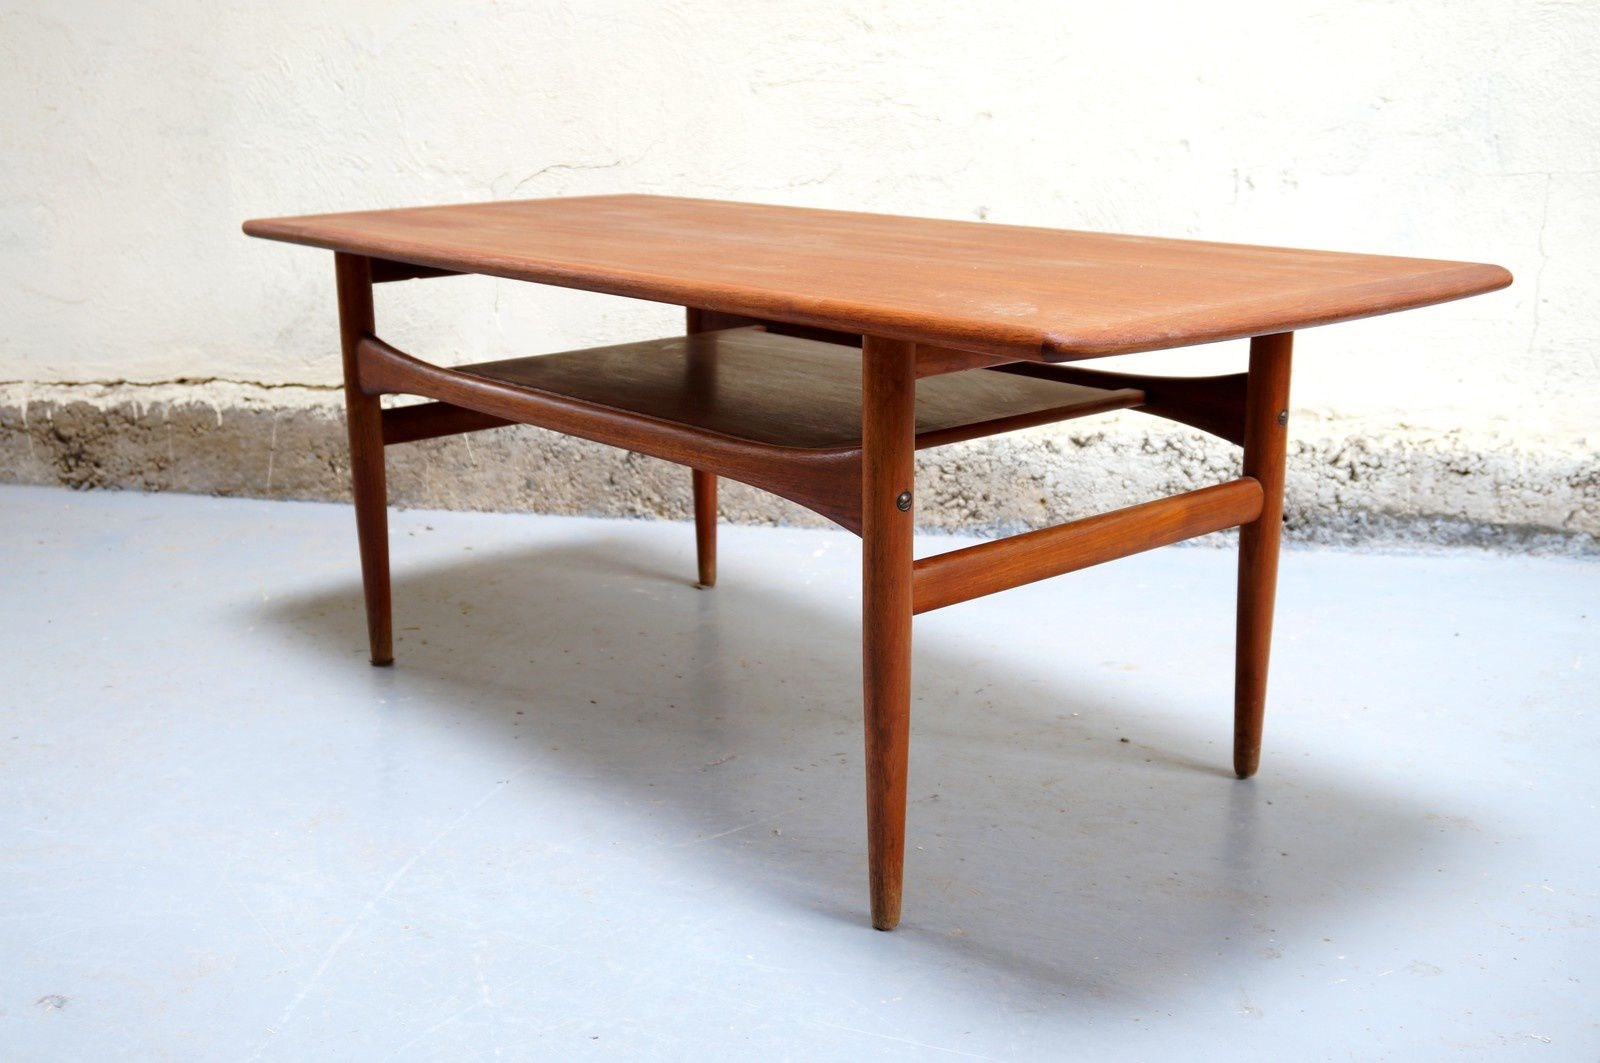 Table basse scandinave arrebo mobler danois vintage danish for Table basse scandinave laque